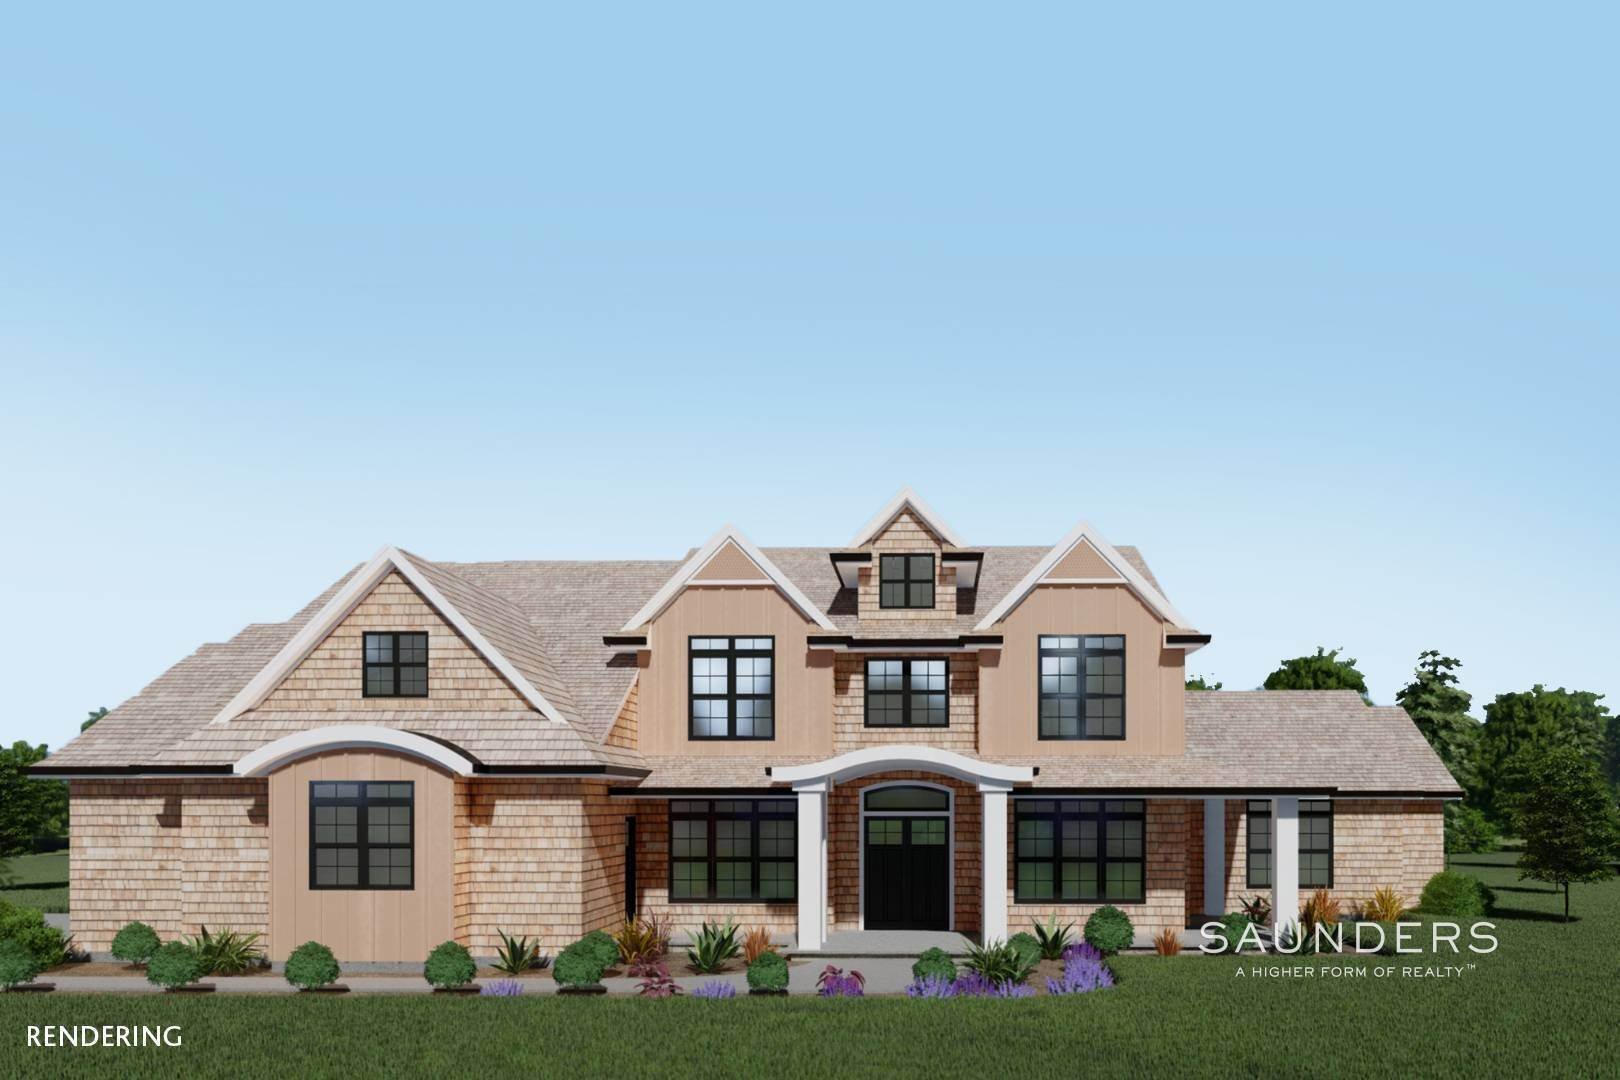 Single Family Homes for Sale at New Construction In Sagaponack With Pool 26 Forest Crossing, Sagaponack, Southampton Town, NY 11962